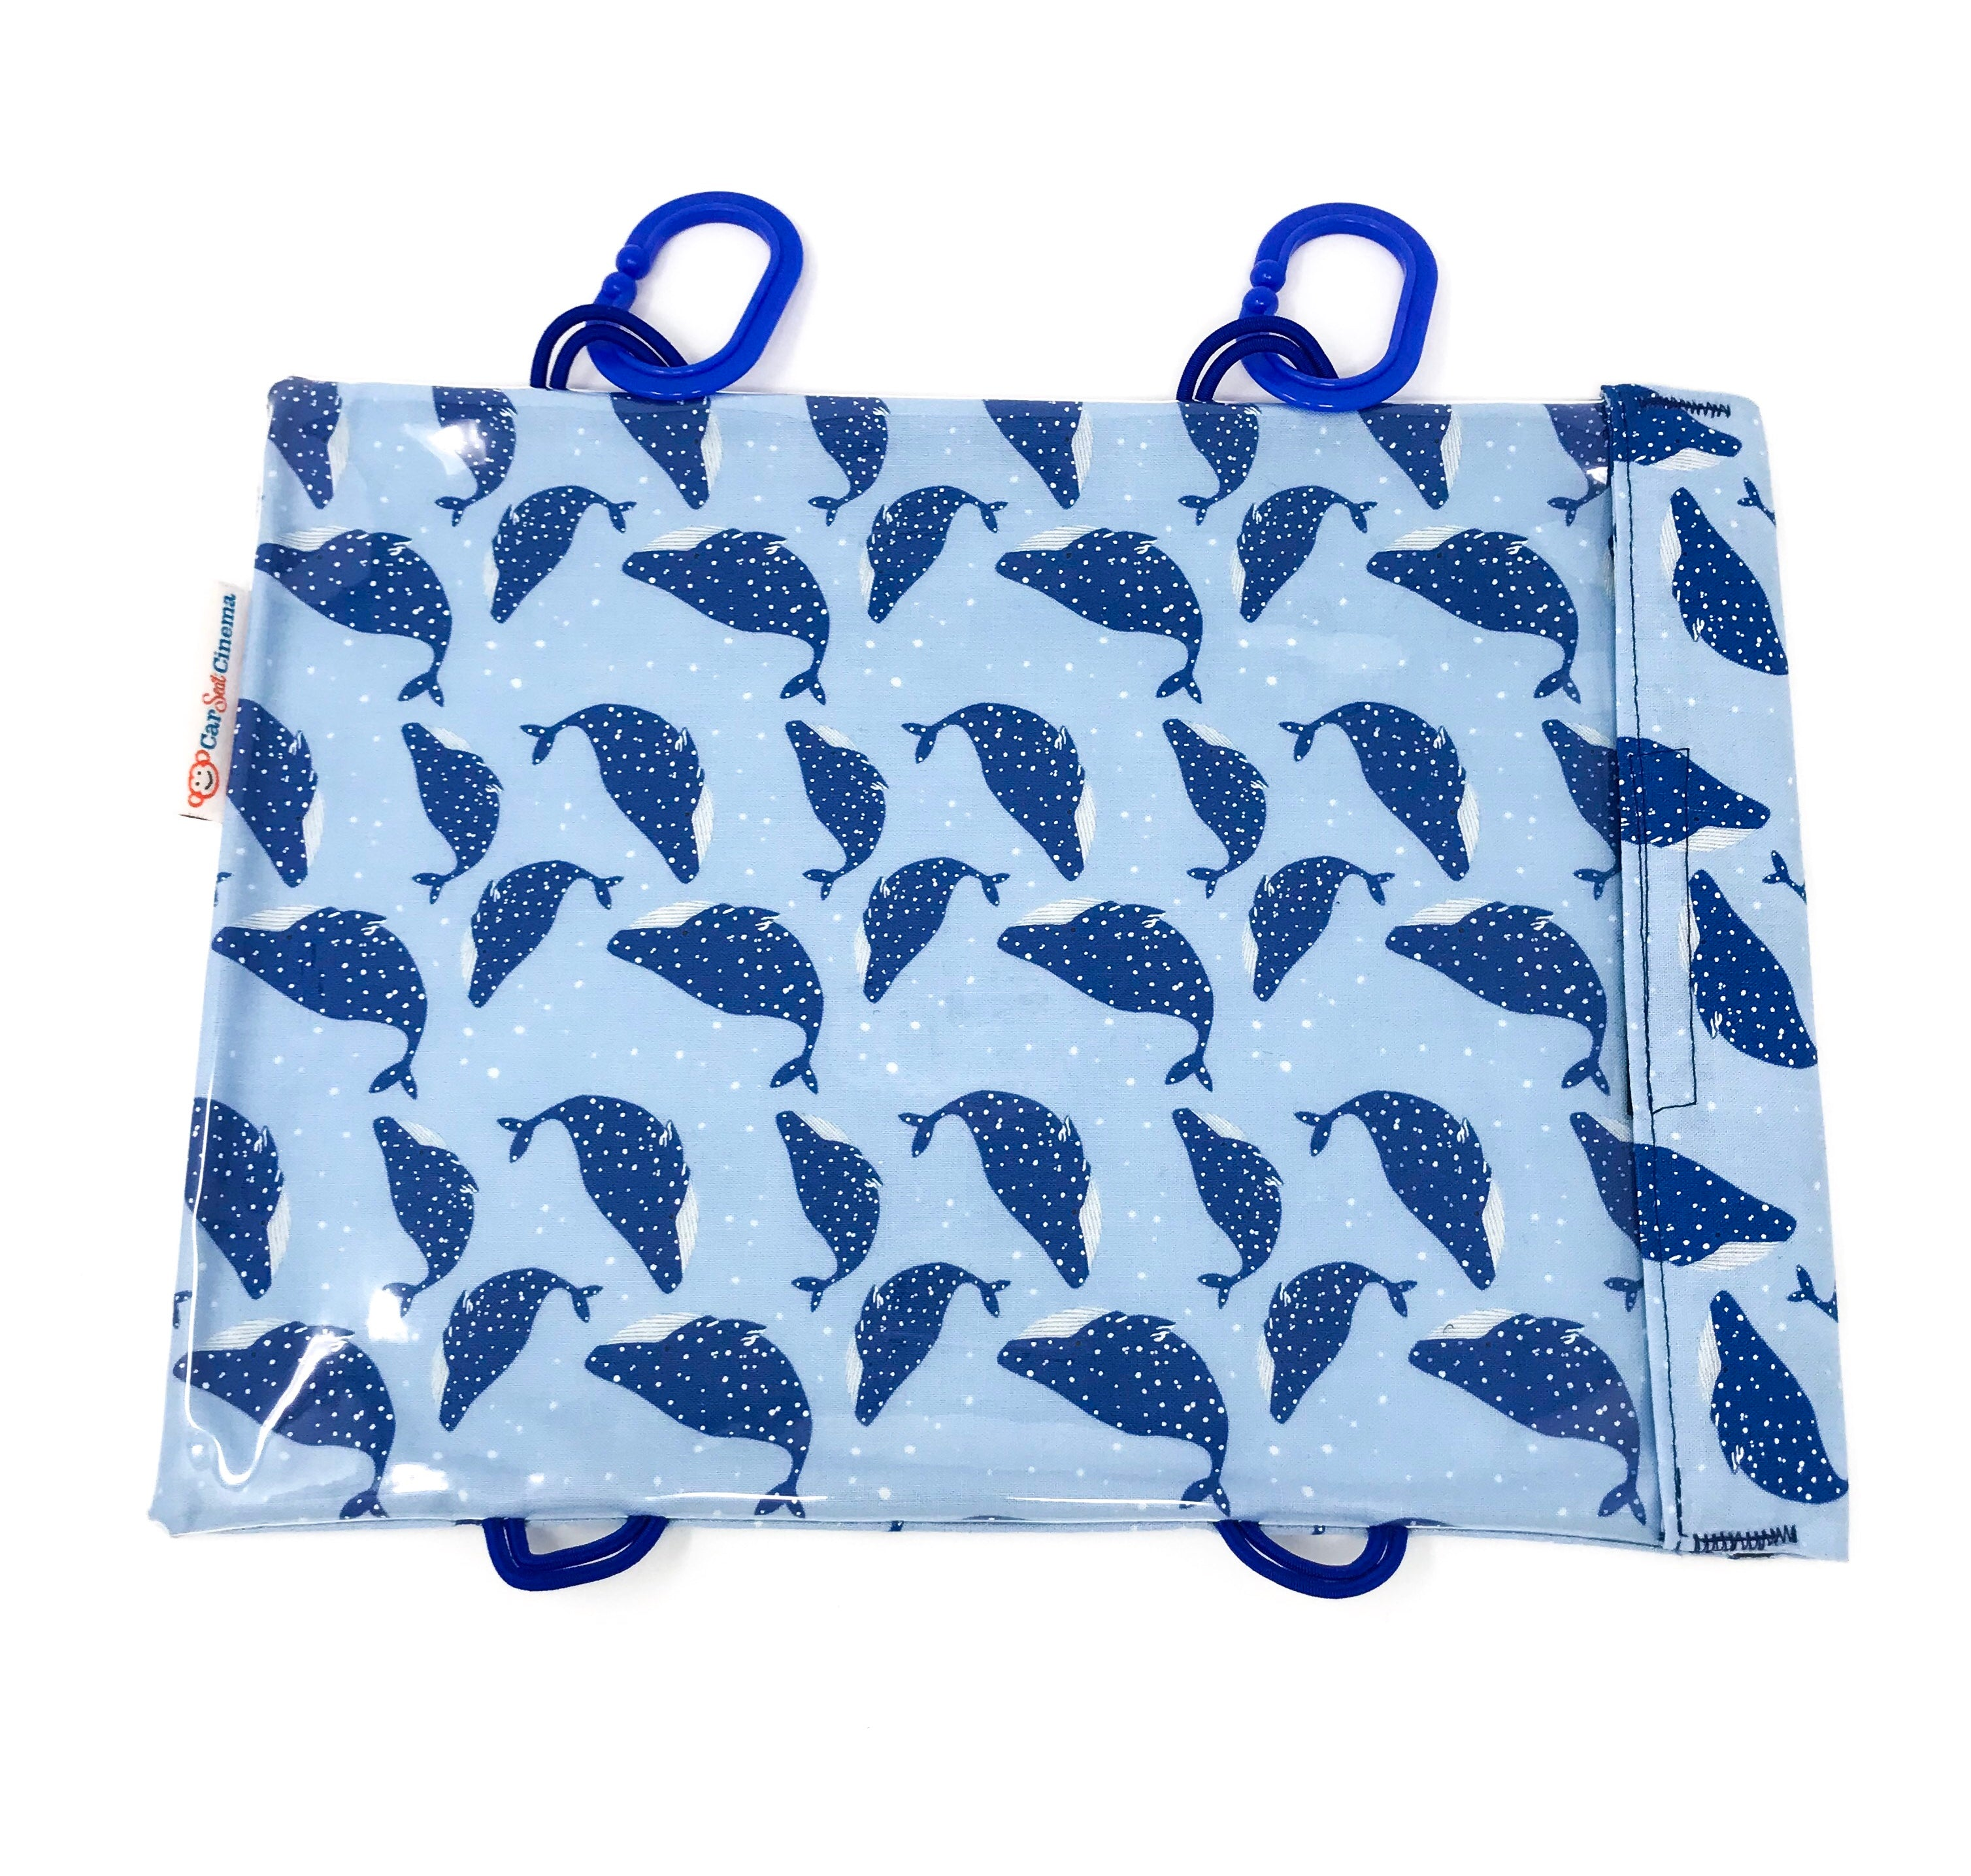 Whales & Waves Tablet Case